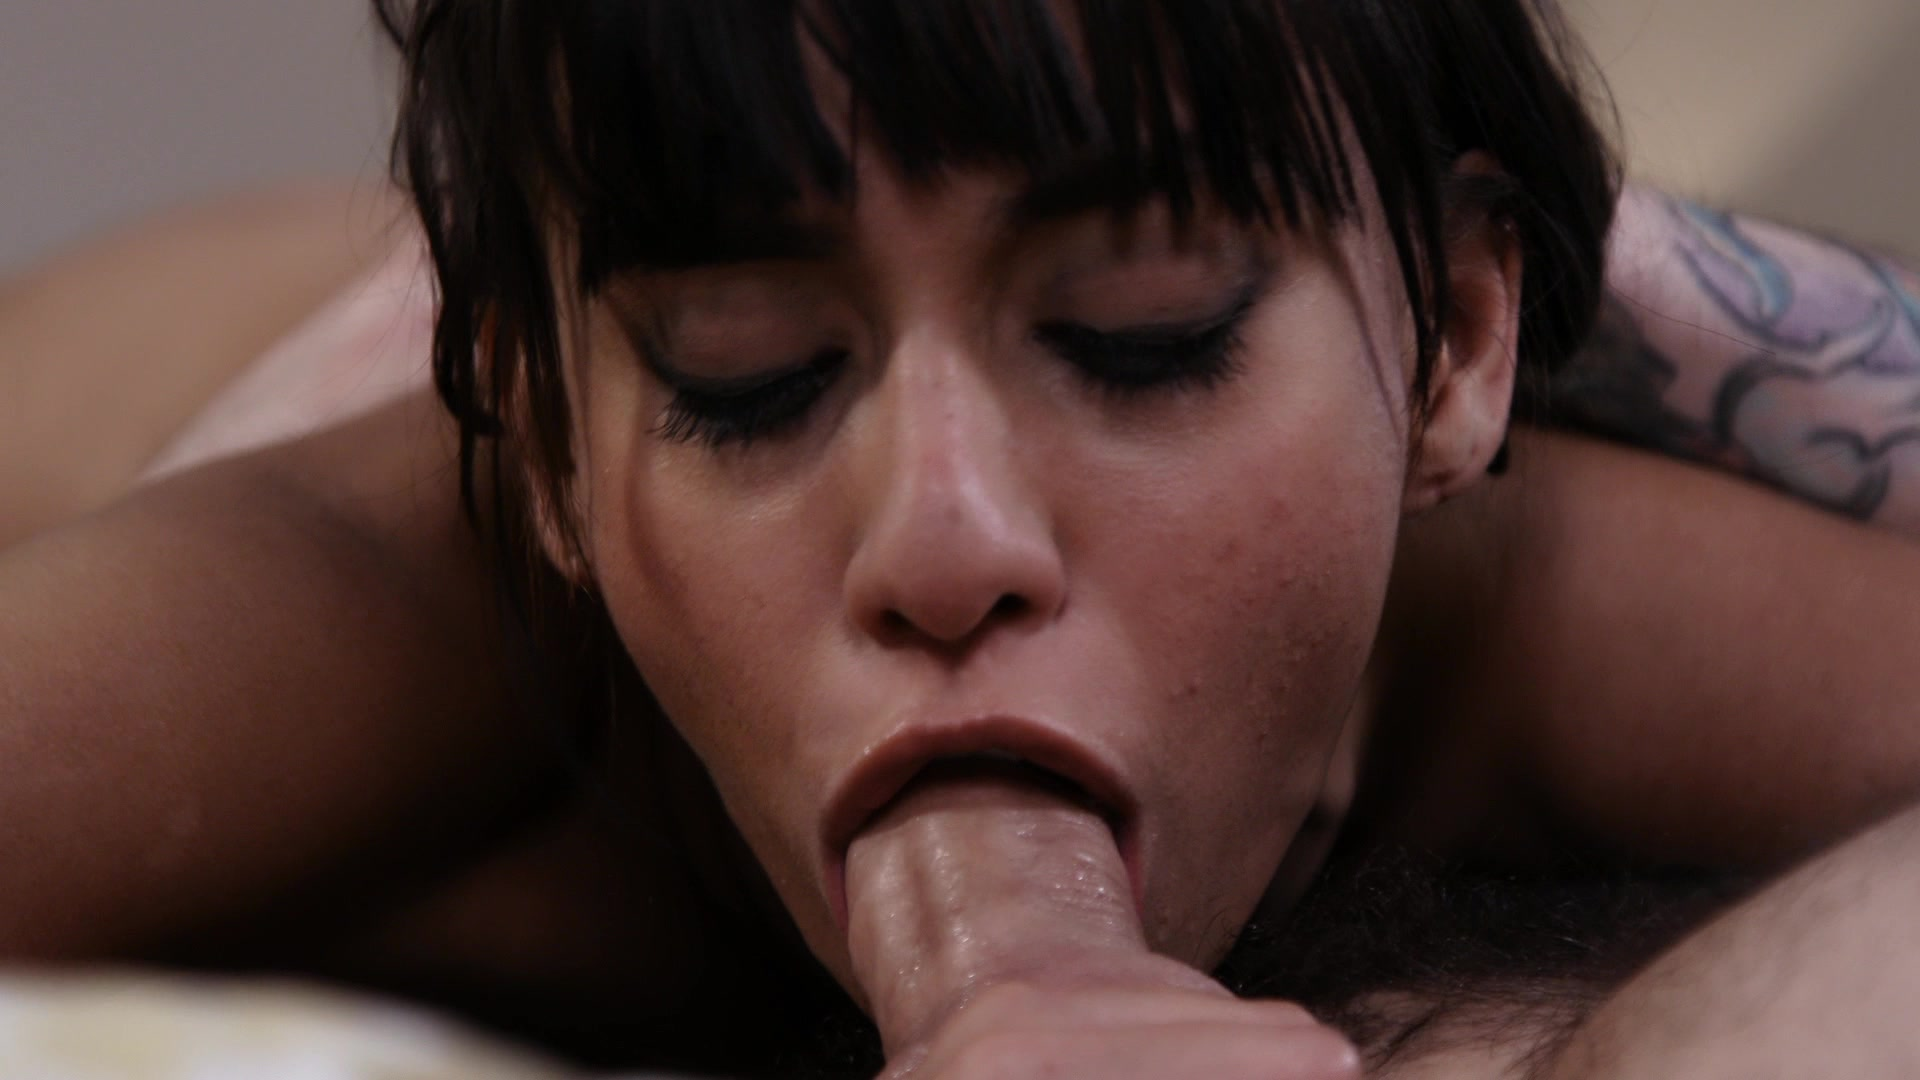 Scene with Tommy Pistol and Janice Griffith - image 16 out of 20